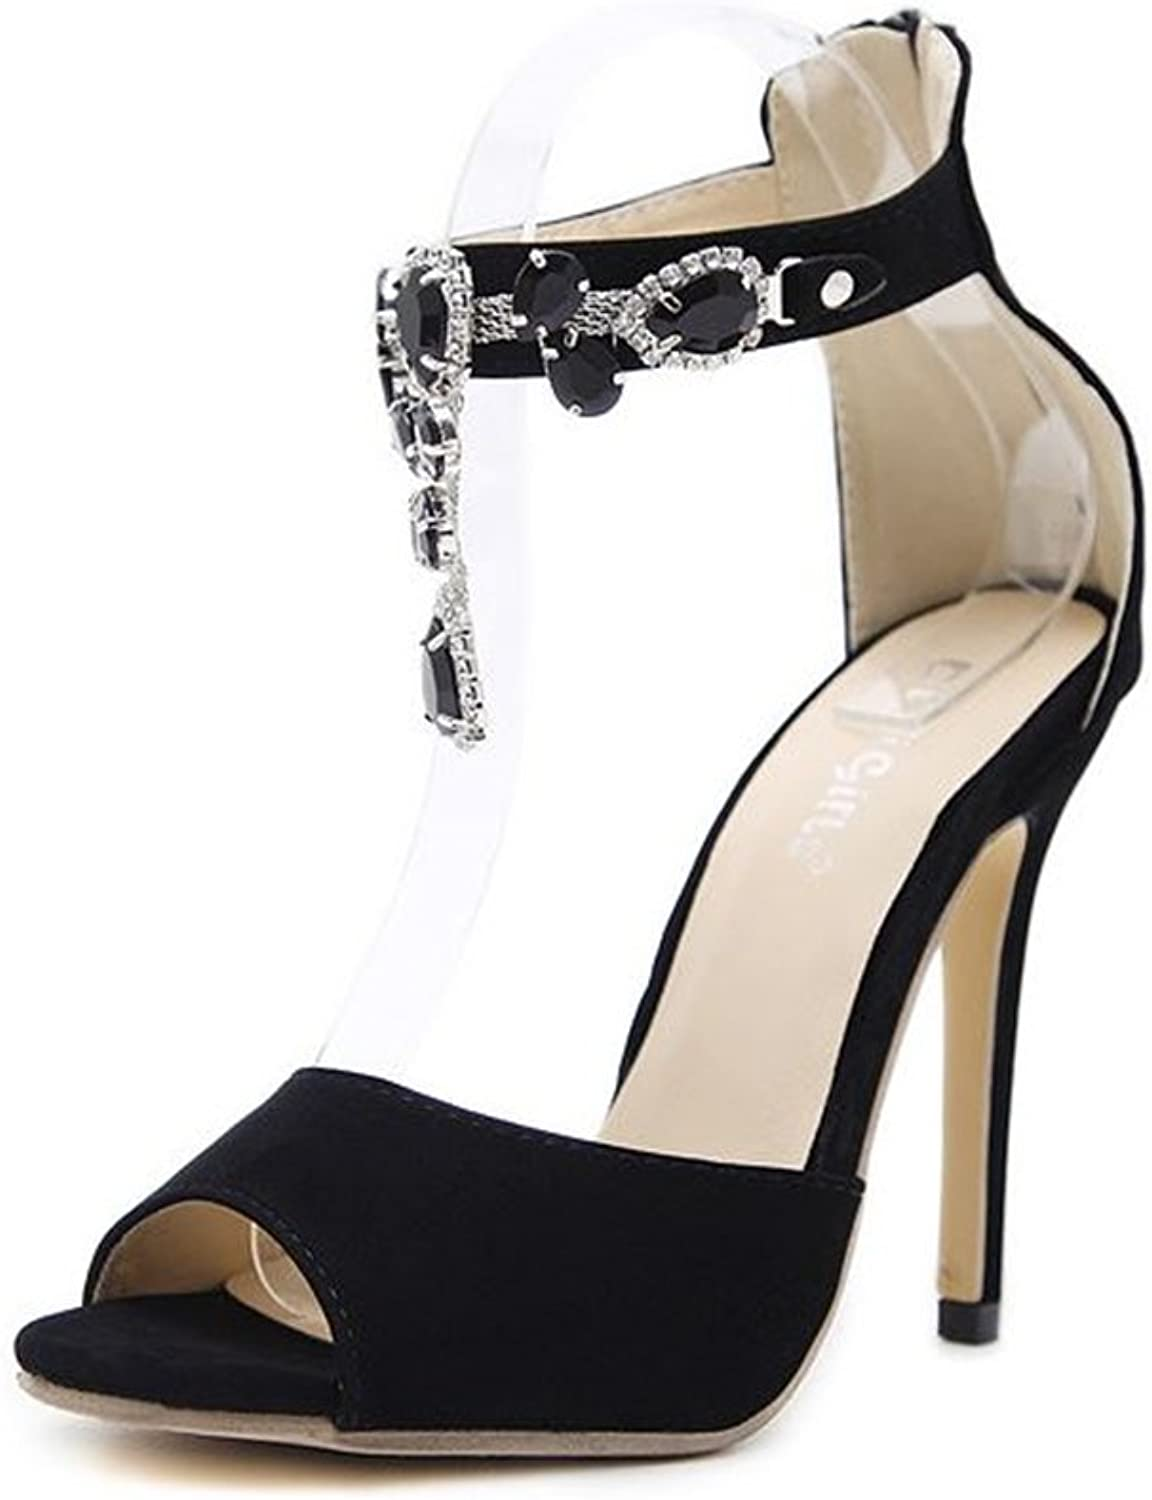 Women's Dressy Closed Pointed Toe D-Orsay Pumps Buckled Ankle Strap Stiletto High Heels shoes